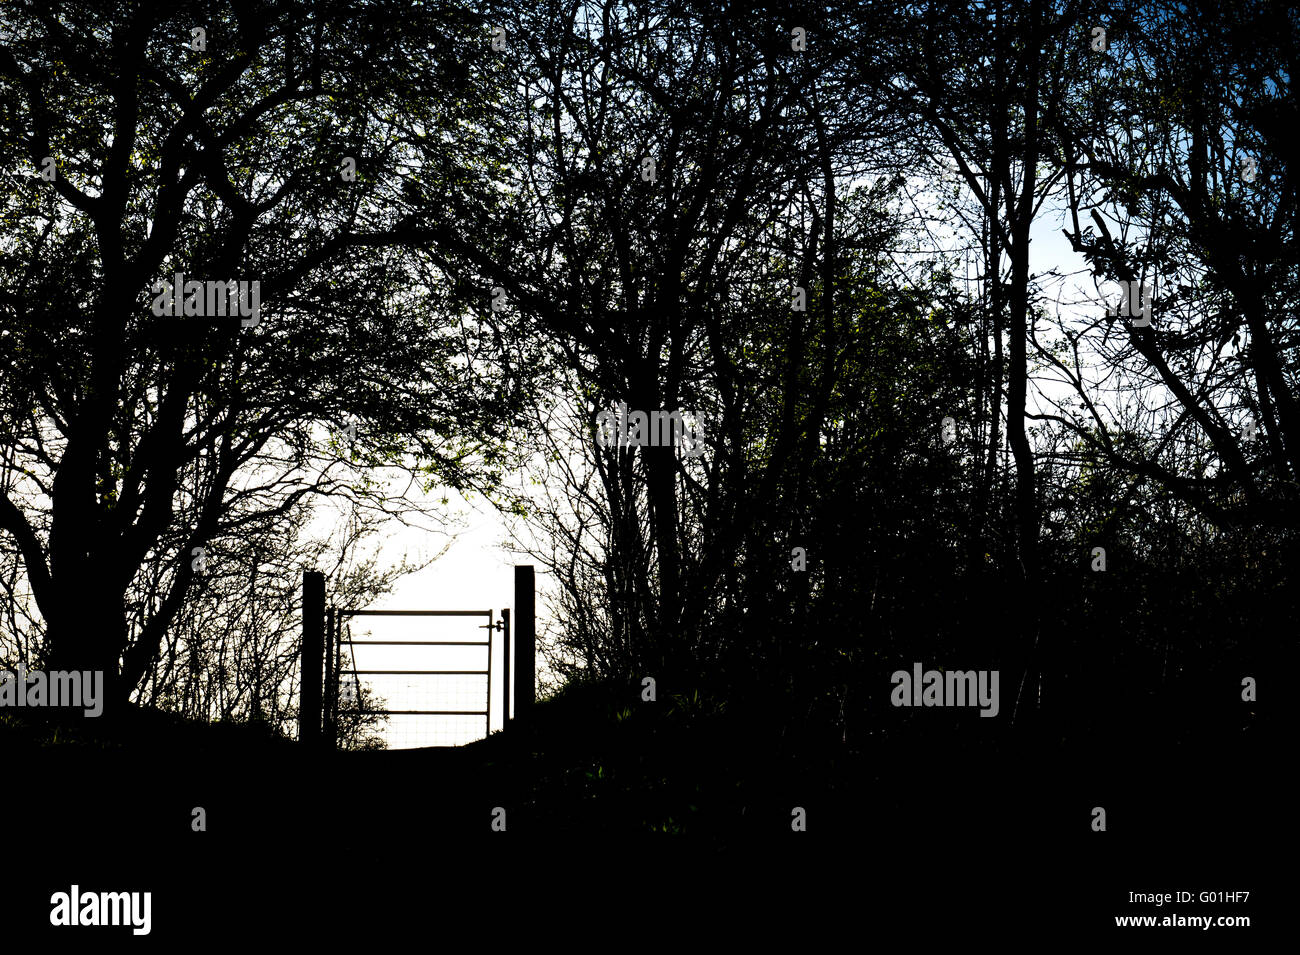 Footpath metal gate and hedgerow silhouette in the Oxfordshire countryside. England - Stock Image